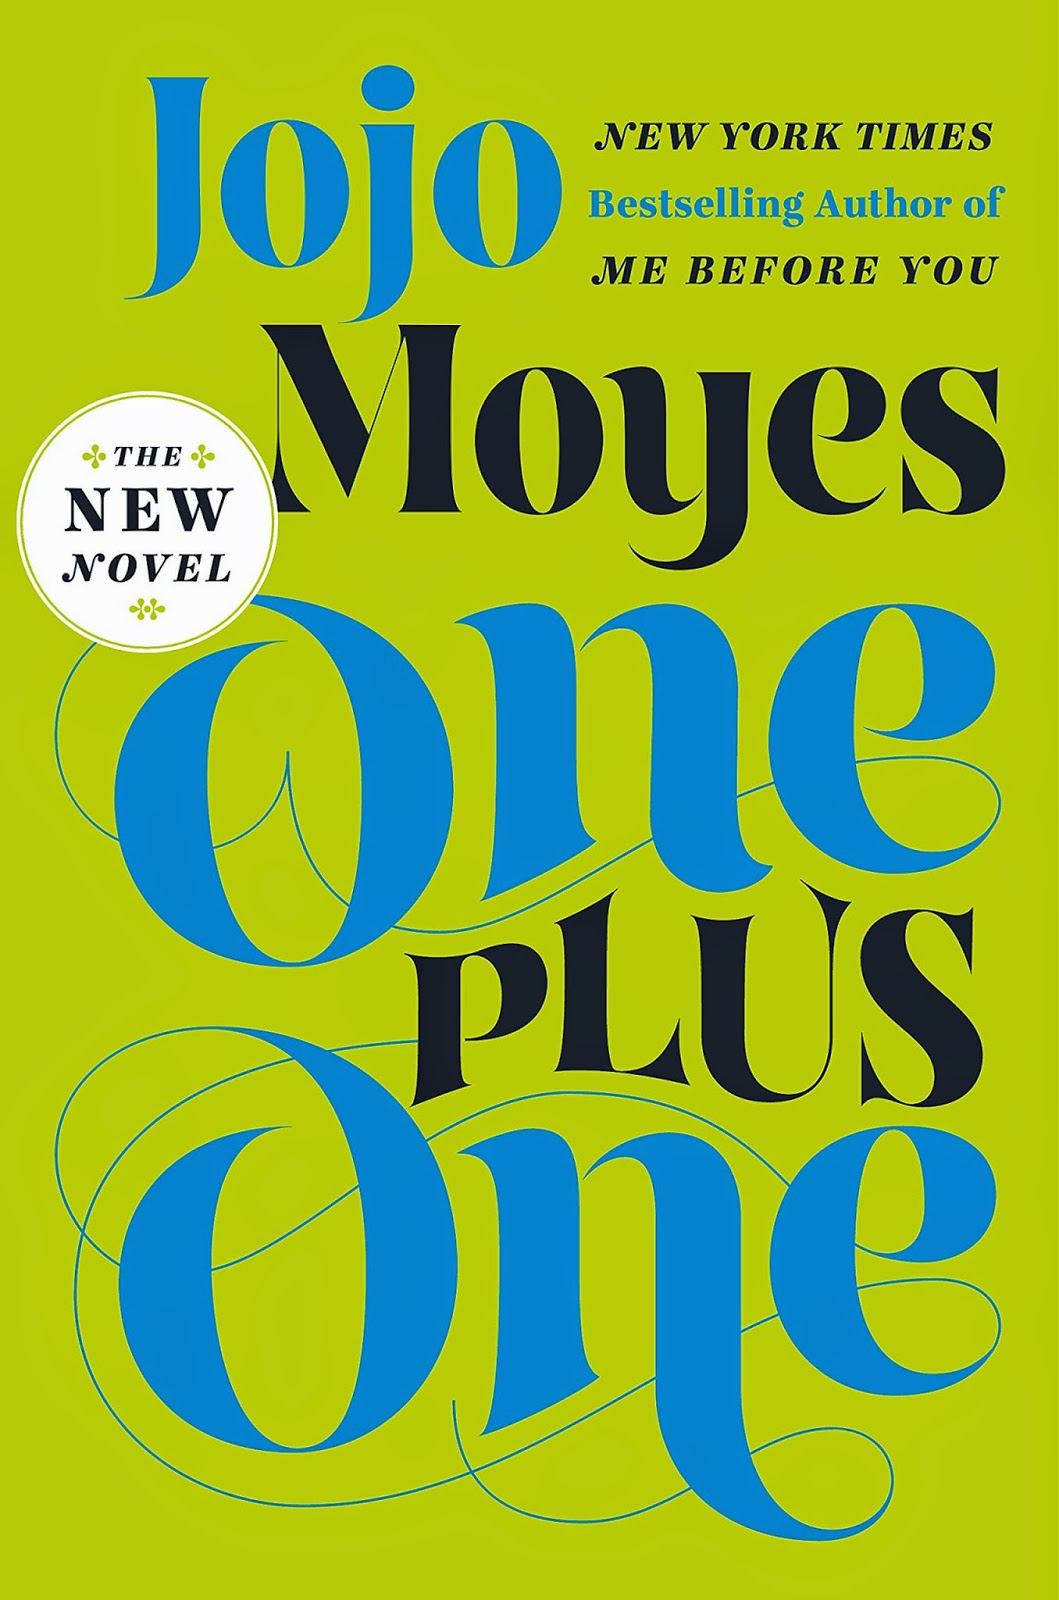 https://www.goodreads.com/book/show/18693716-one-plus-one